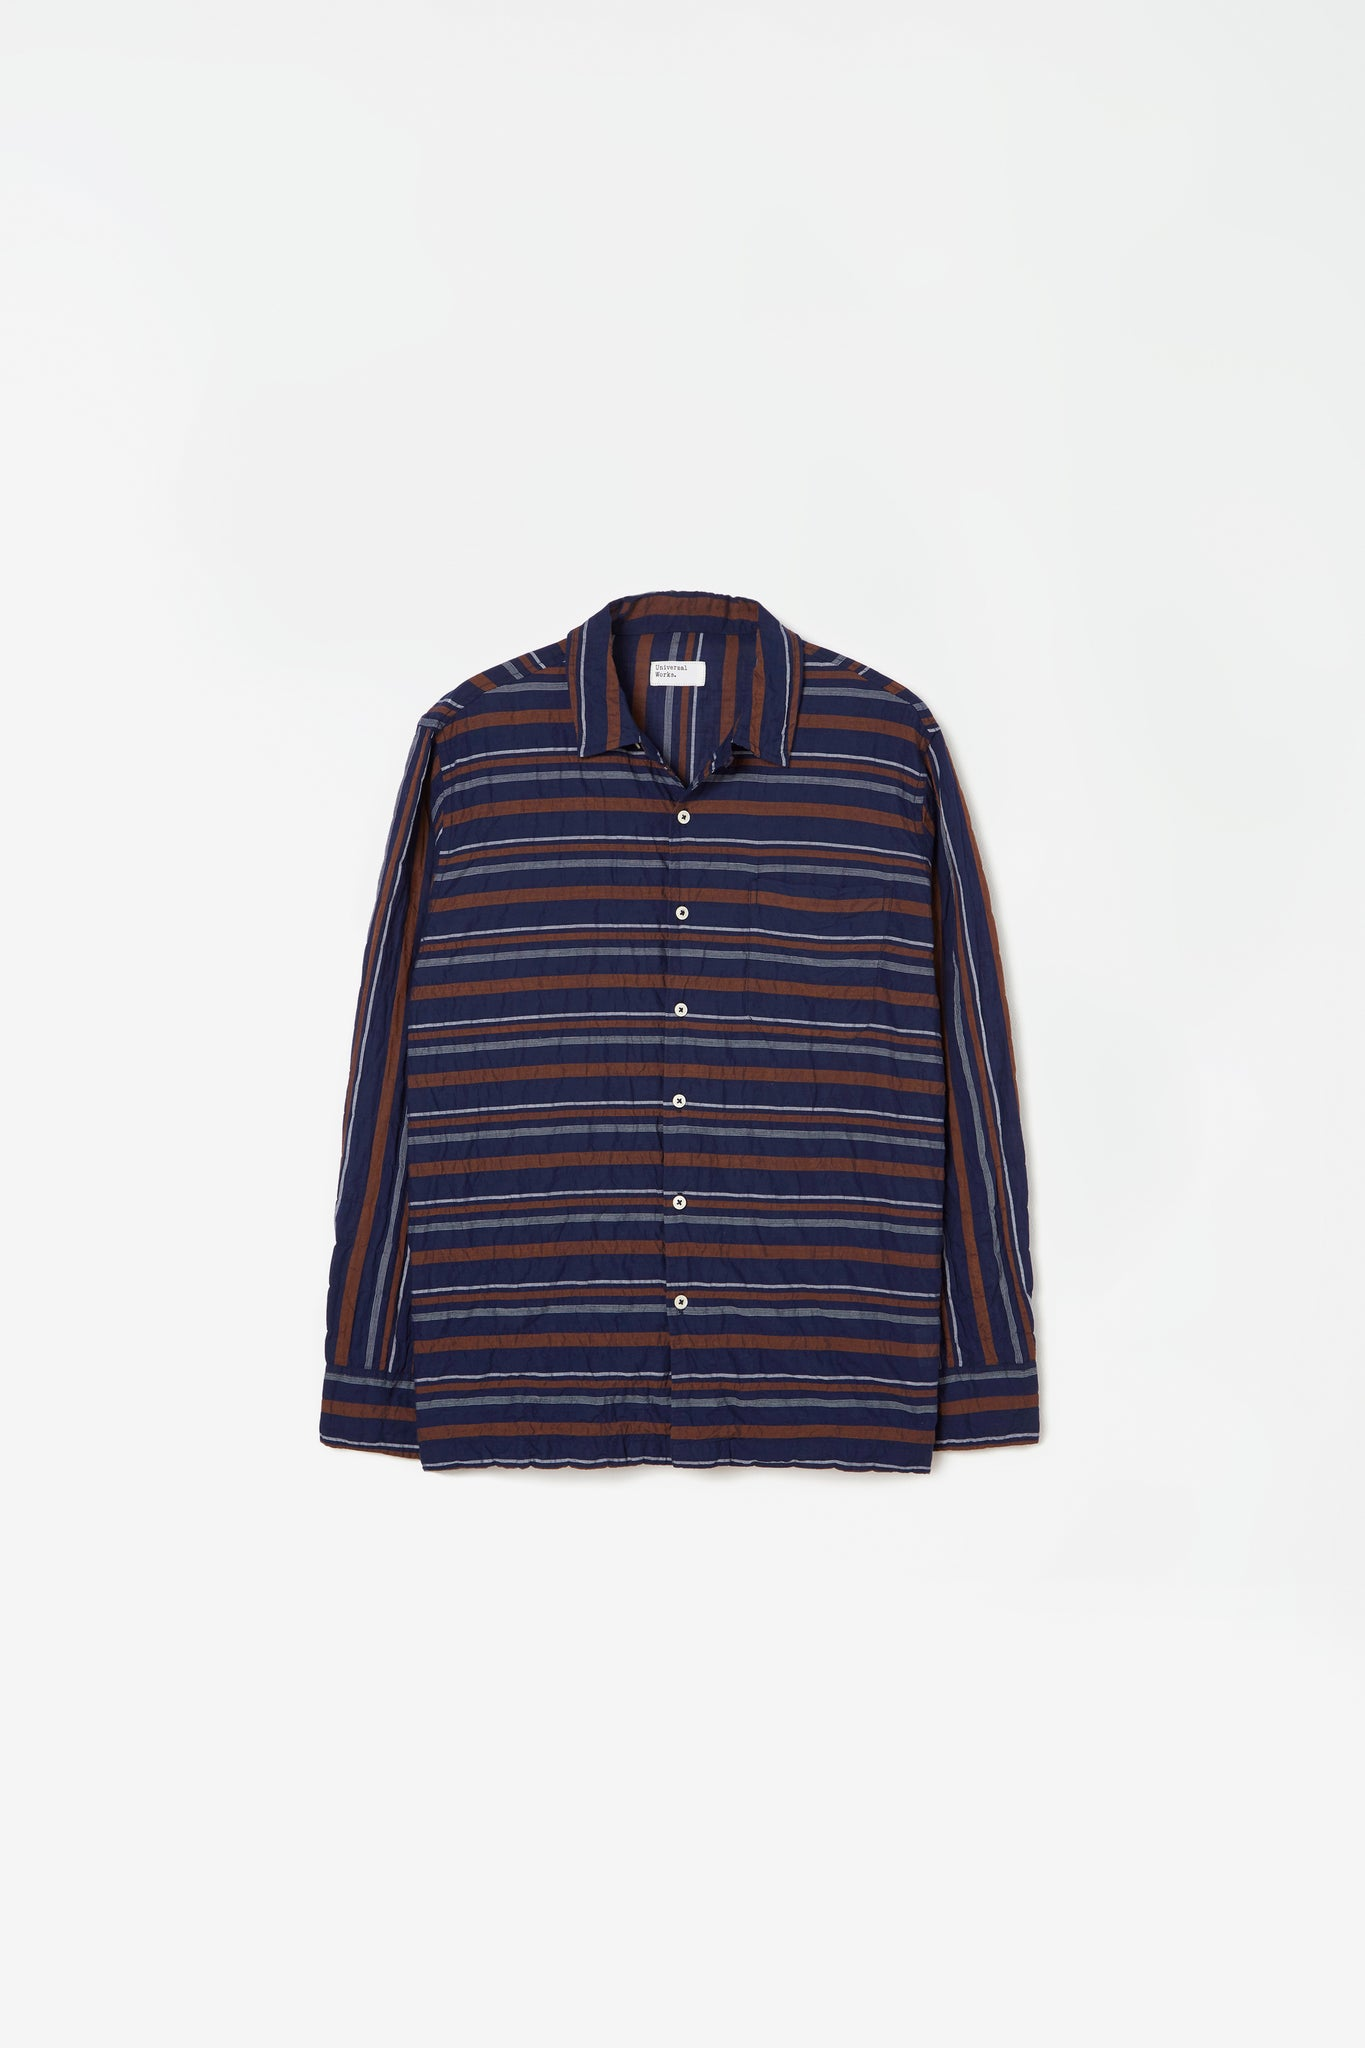 Garage shirt acapulco stripe navy